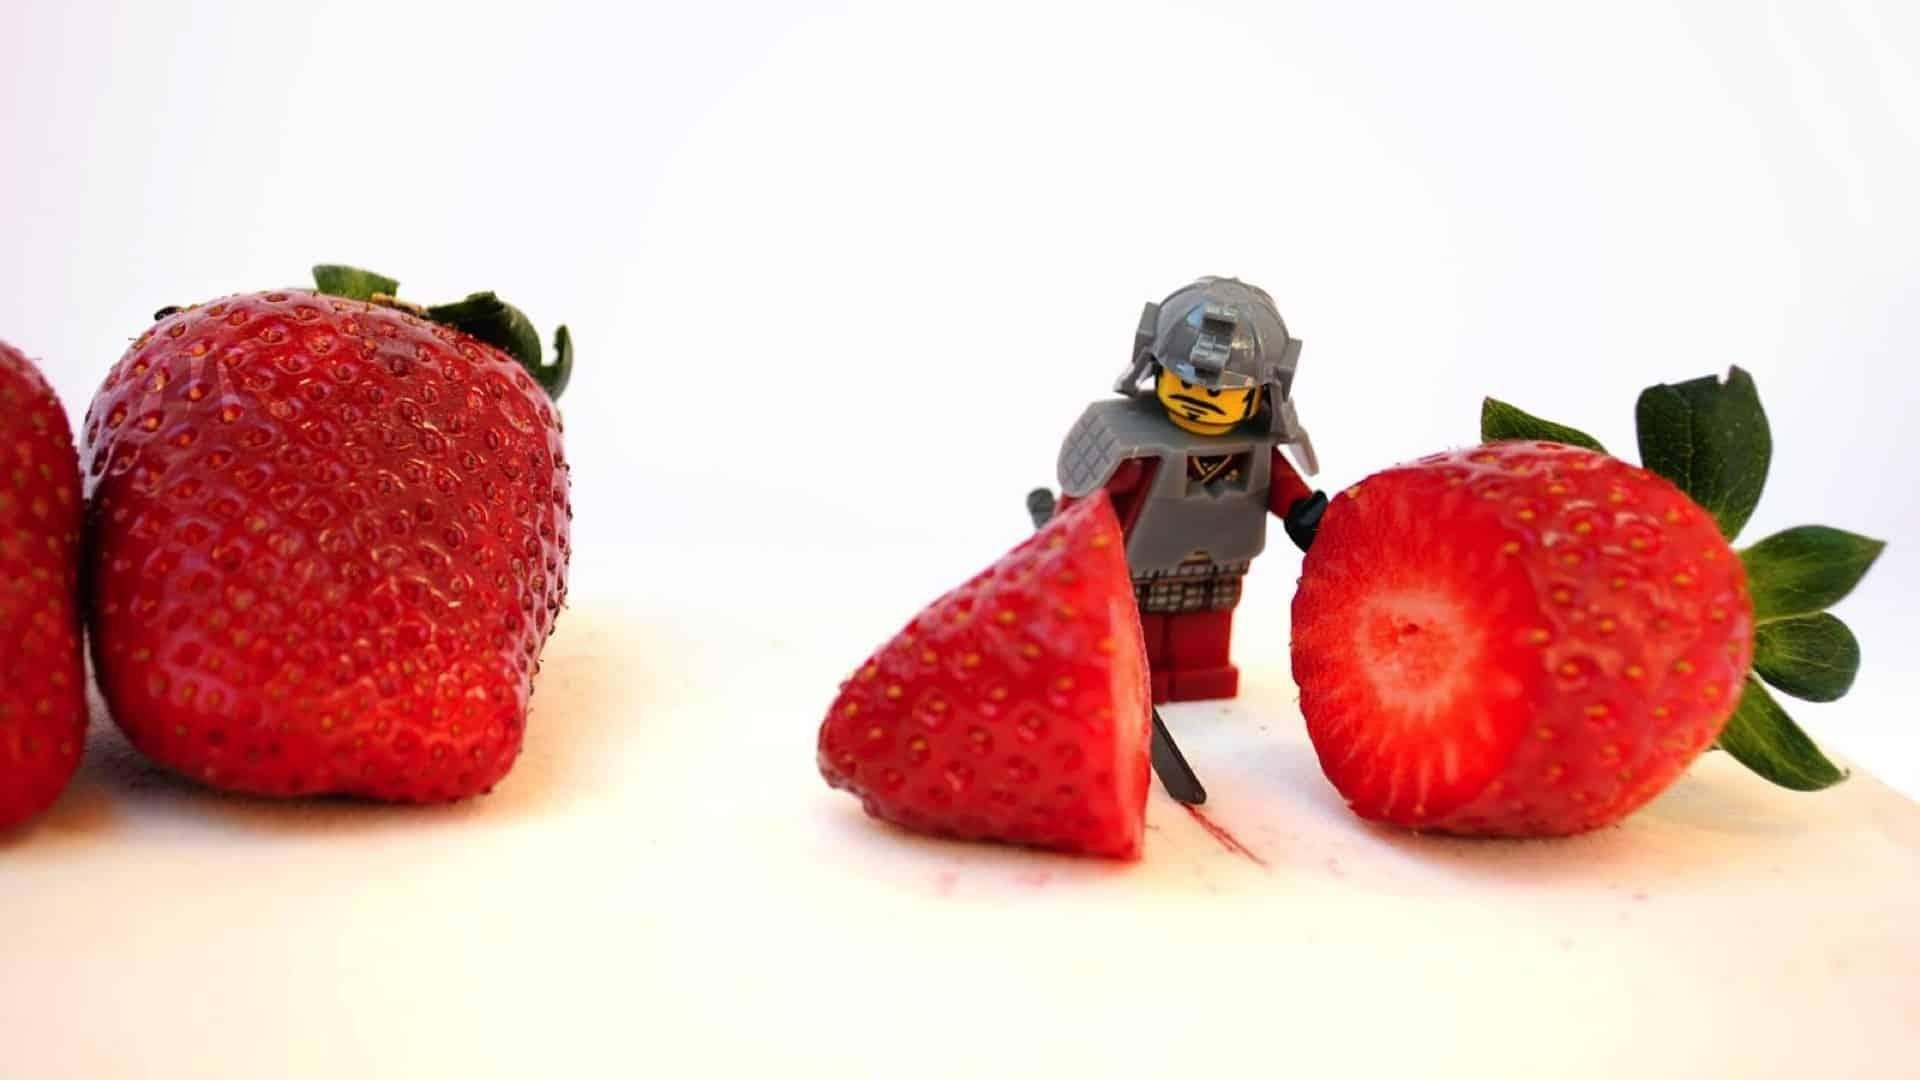 If Fructose Is Bad, What About Fruit?